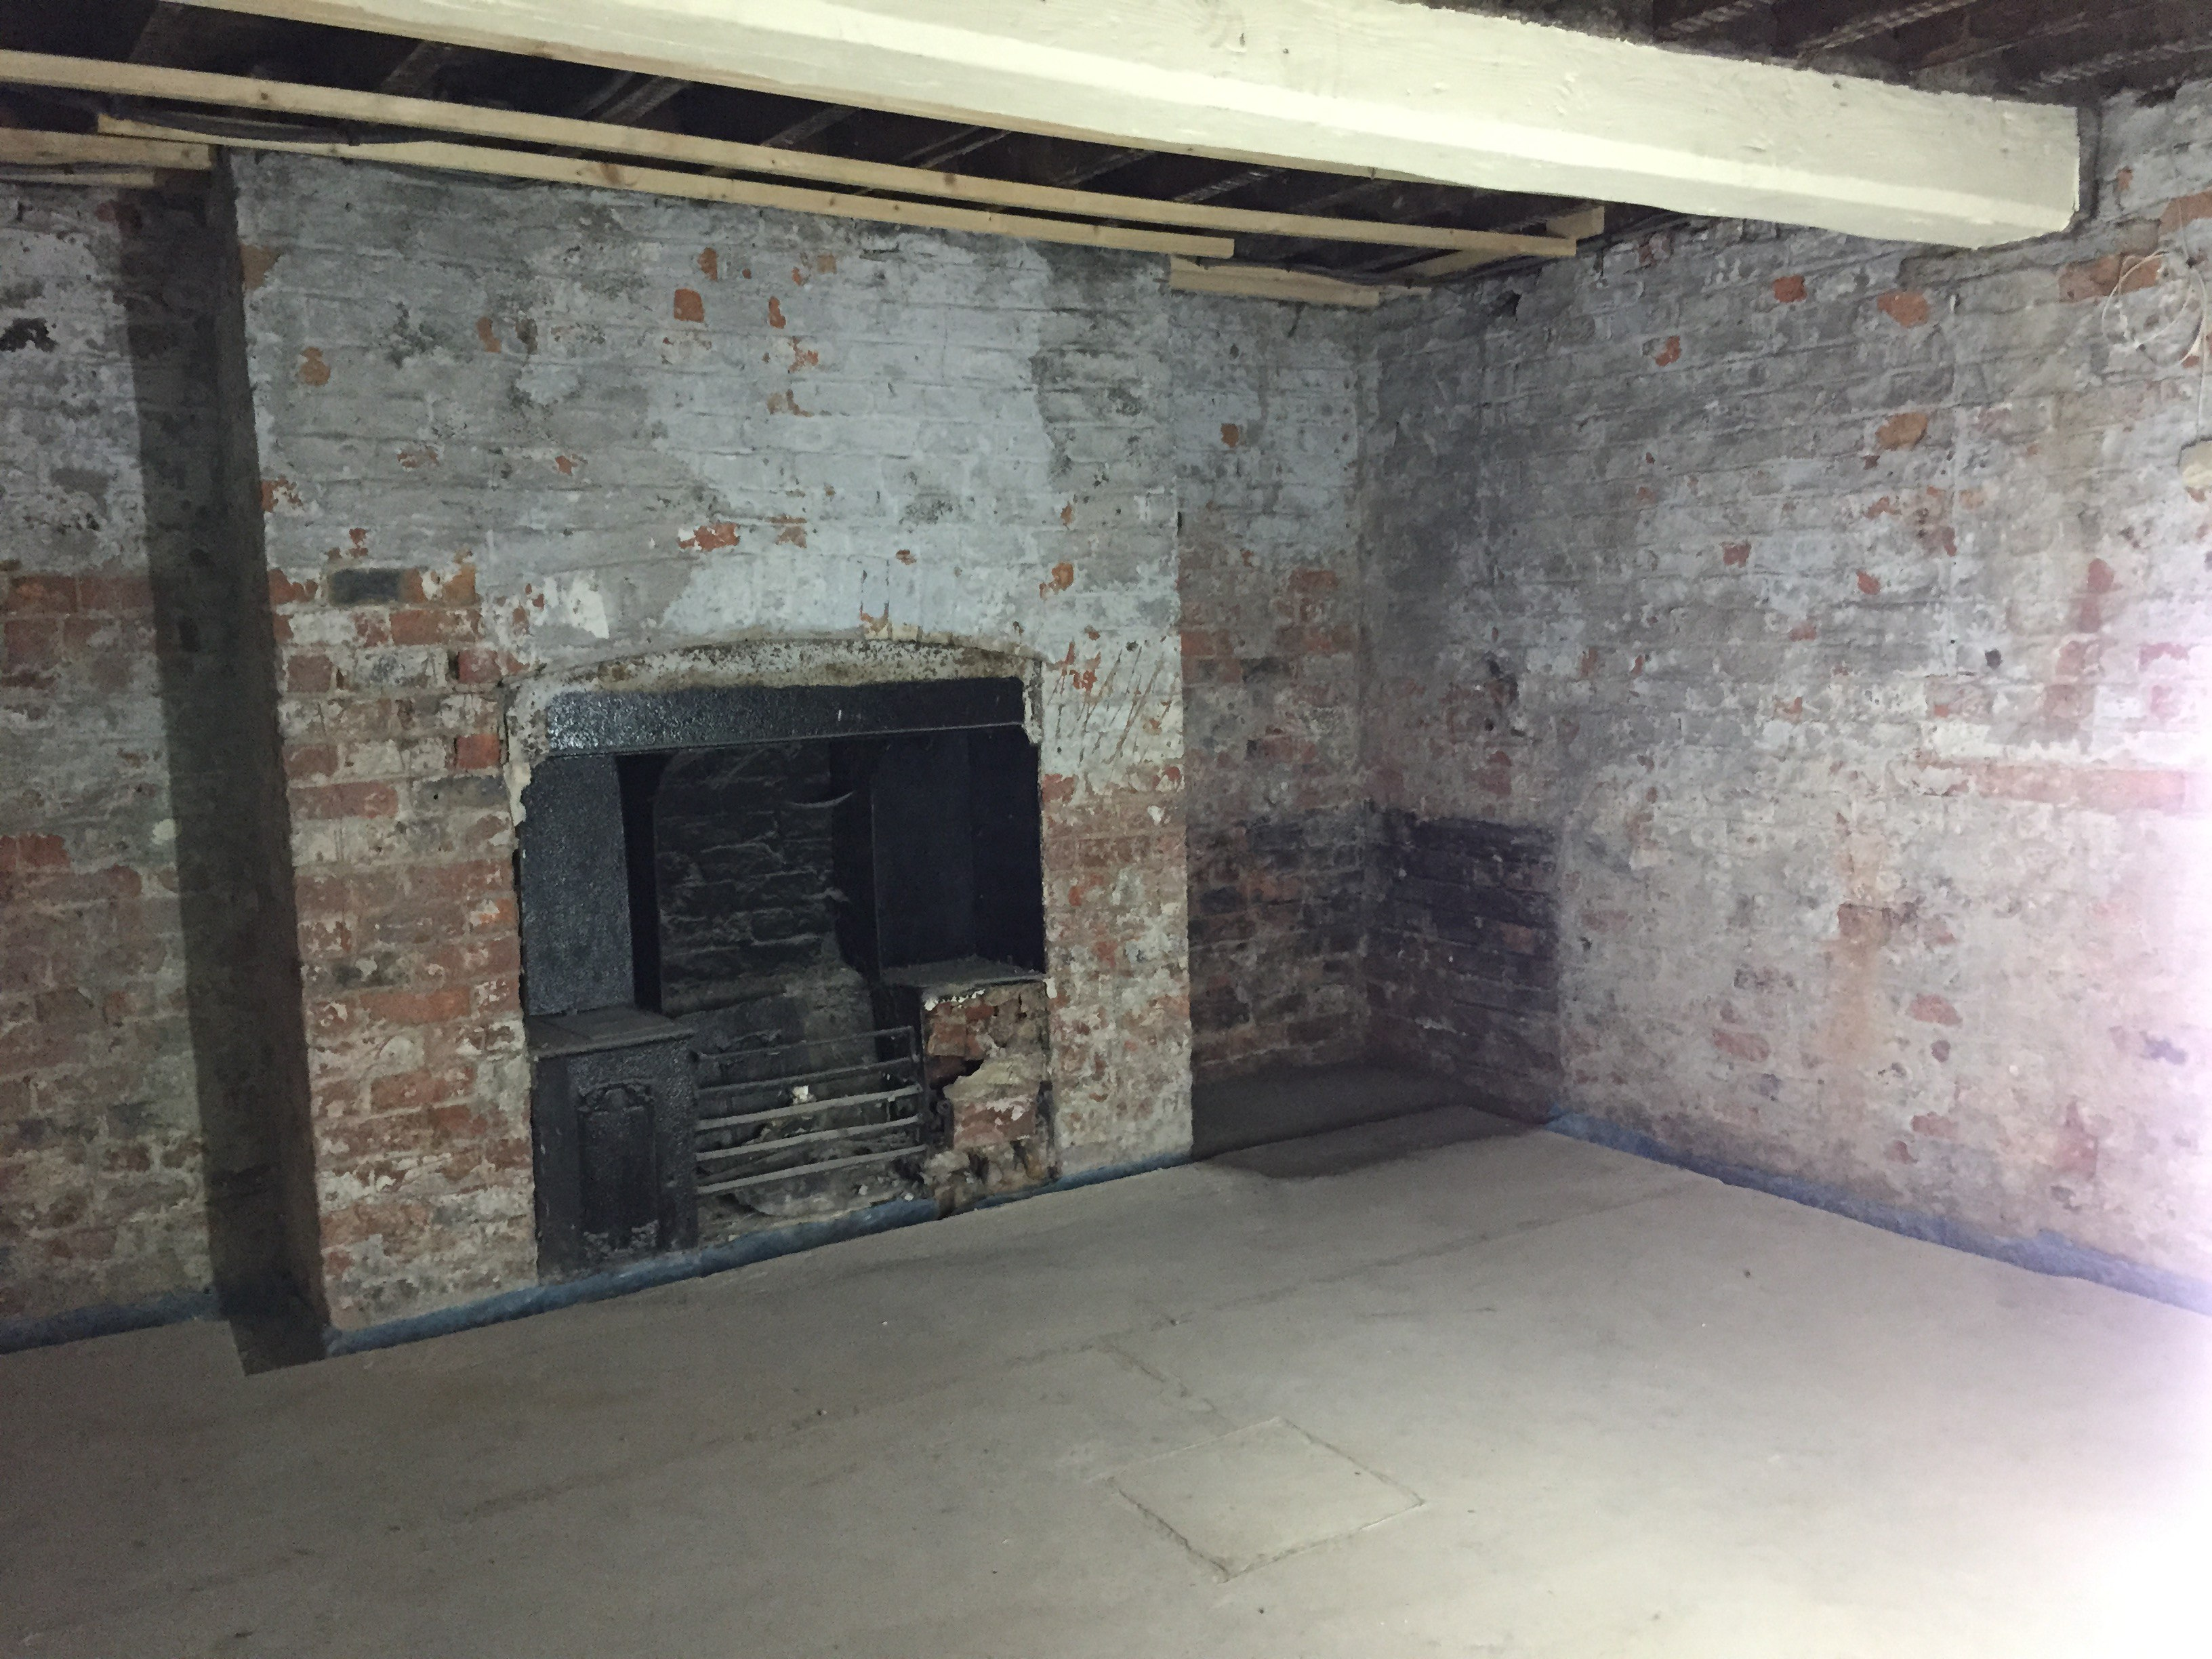 Basement Waterproofing Project In York For Construction pany